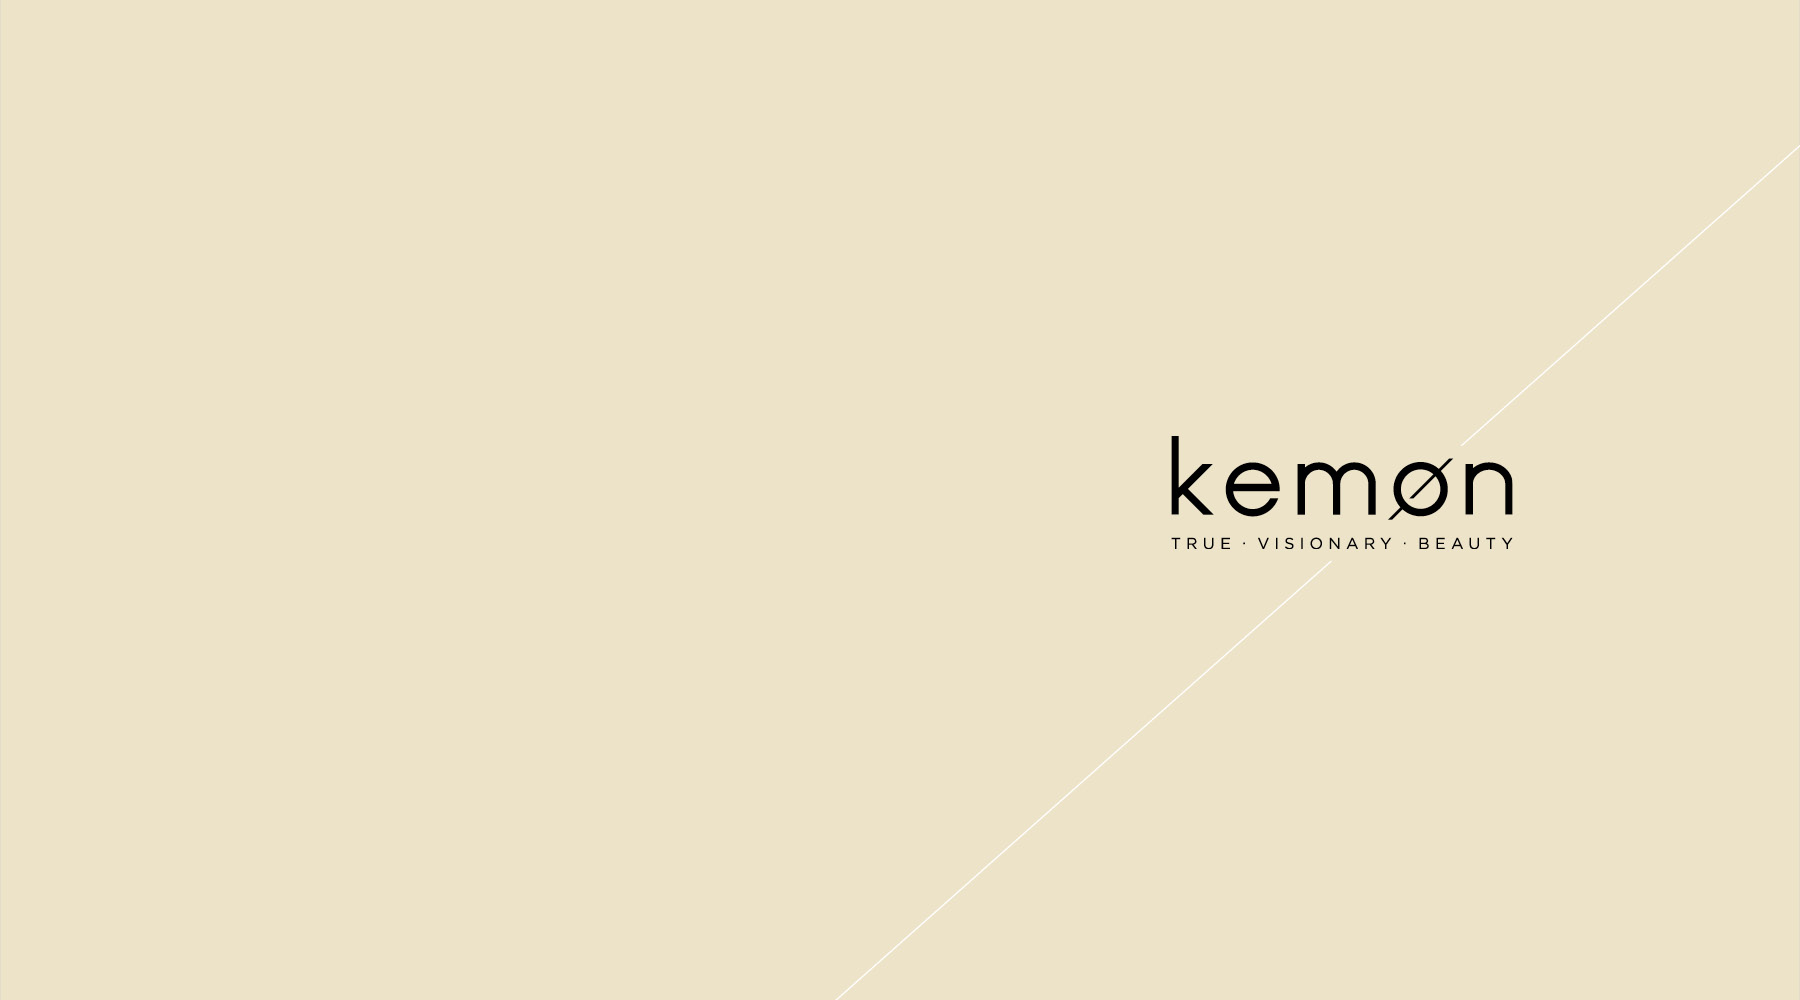 Kemon Identity Home